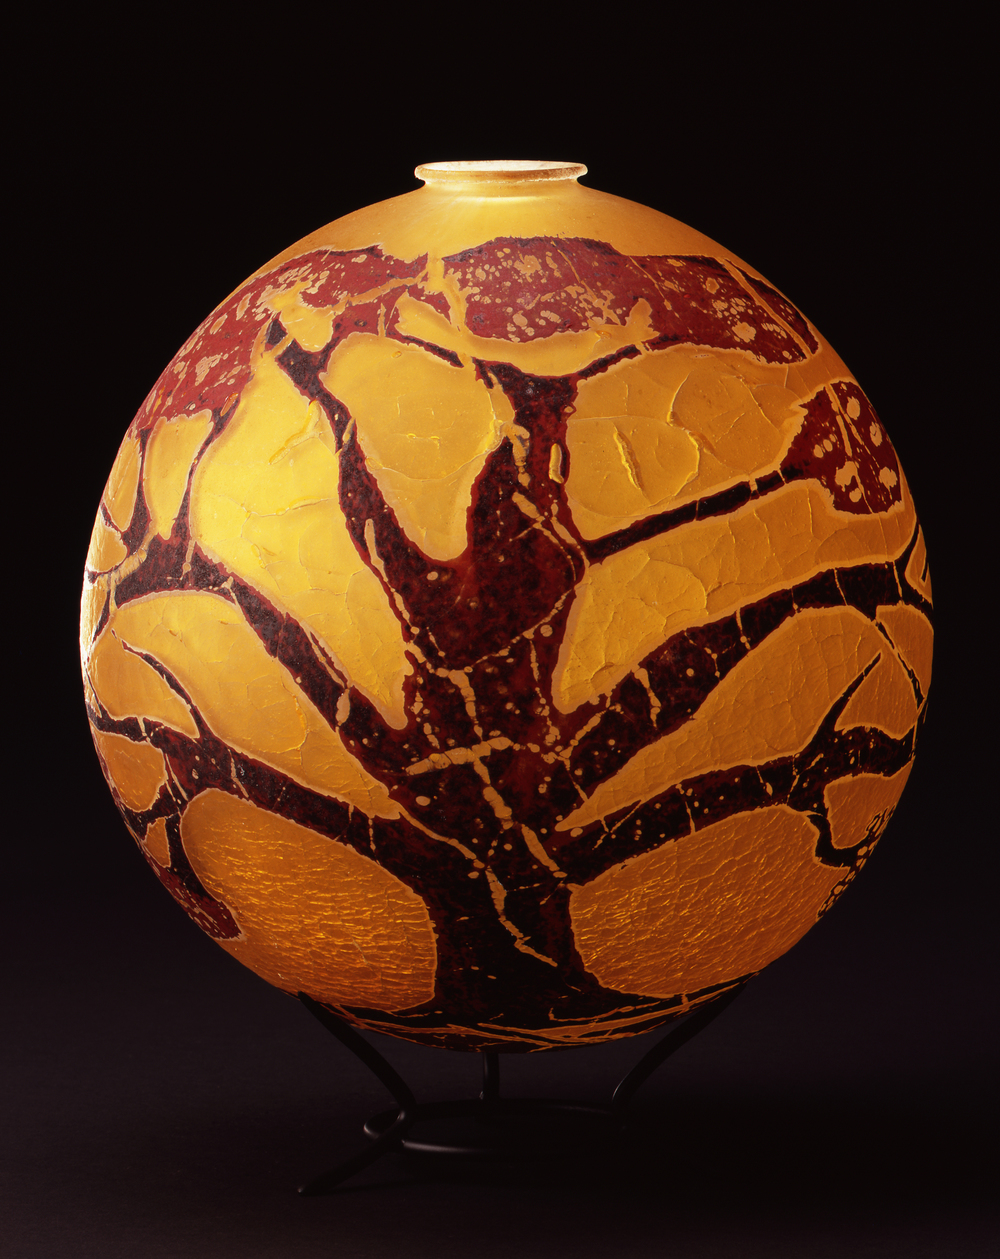 William Morris,  Globe Vessel with Juniper Tree Form  (2004, glass, 11 1/8 x 9 3/4 x 9 3/4 inches), WM.22